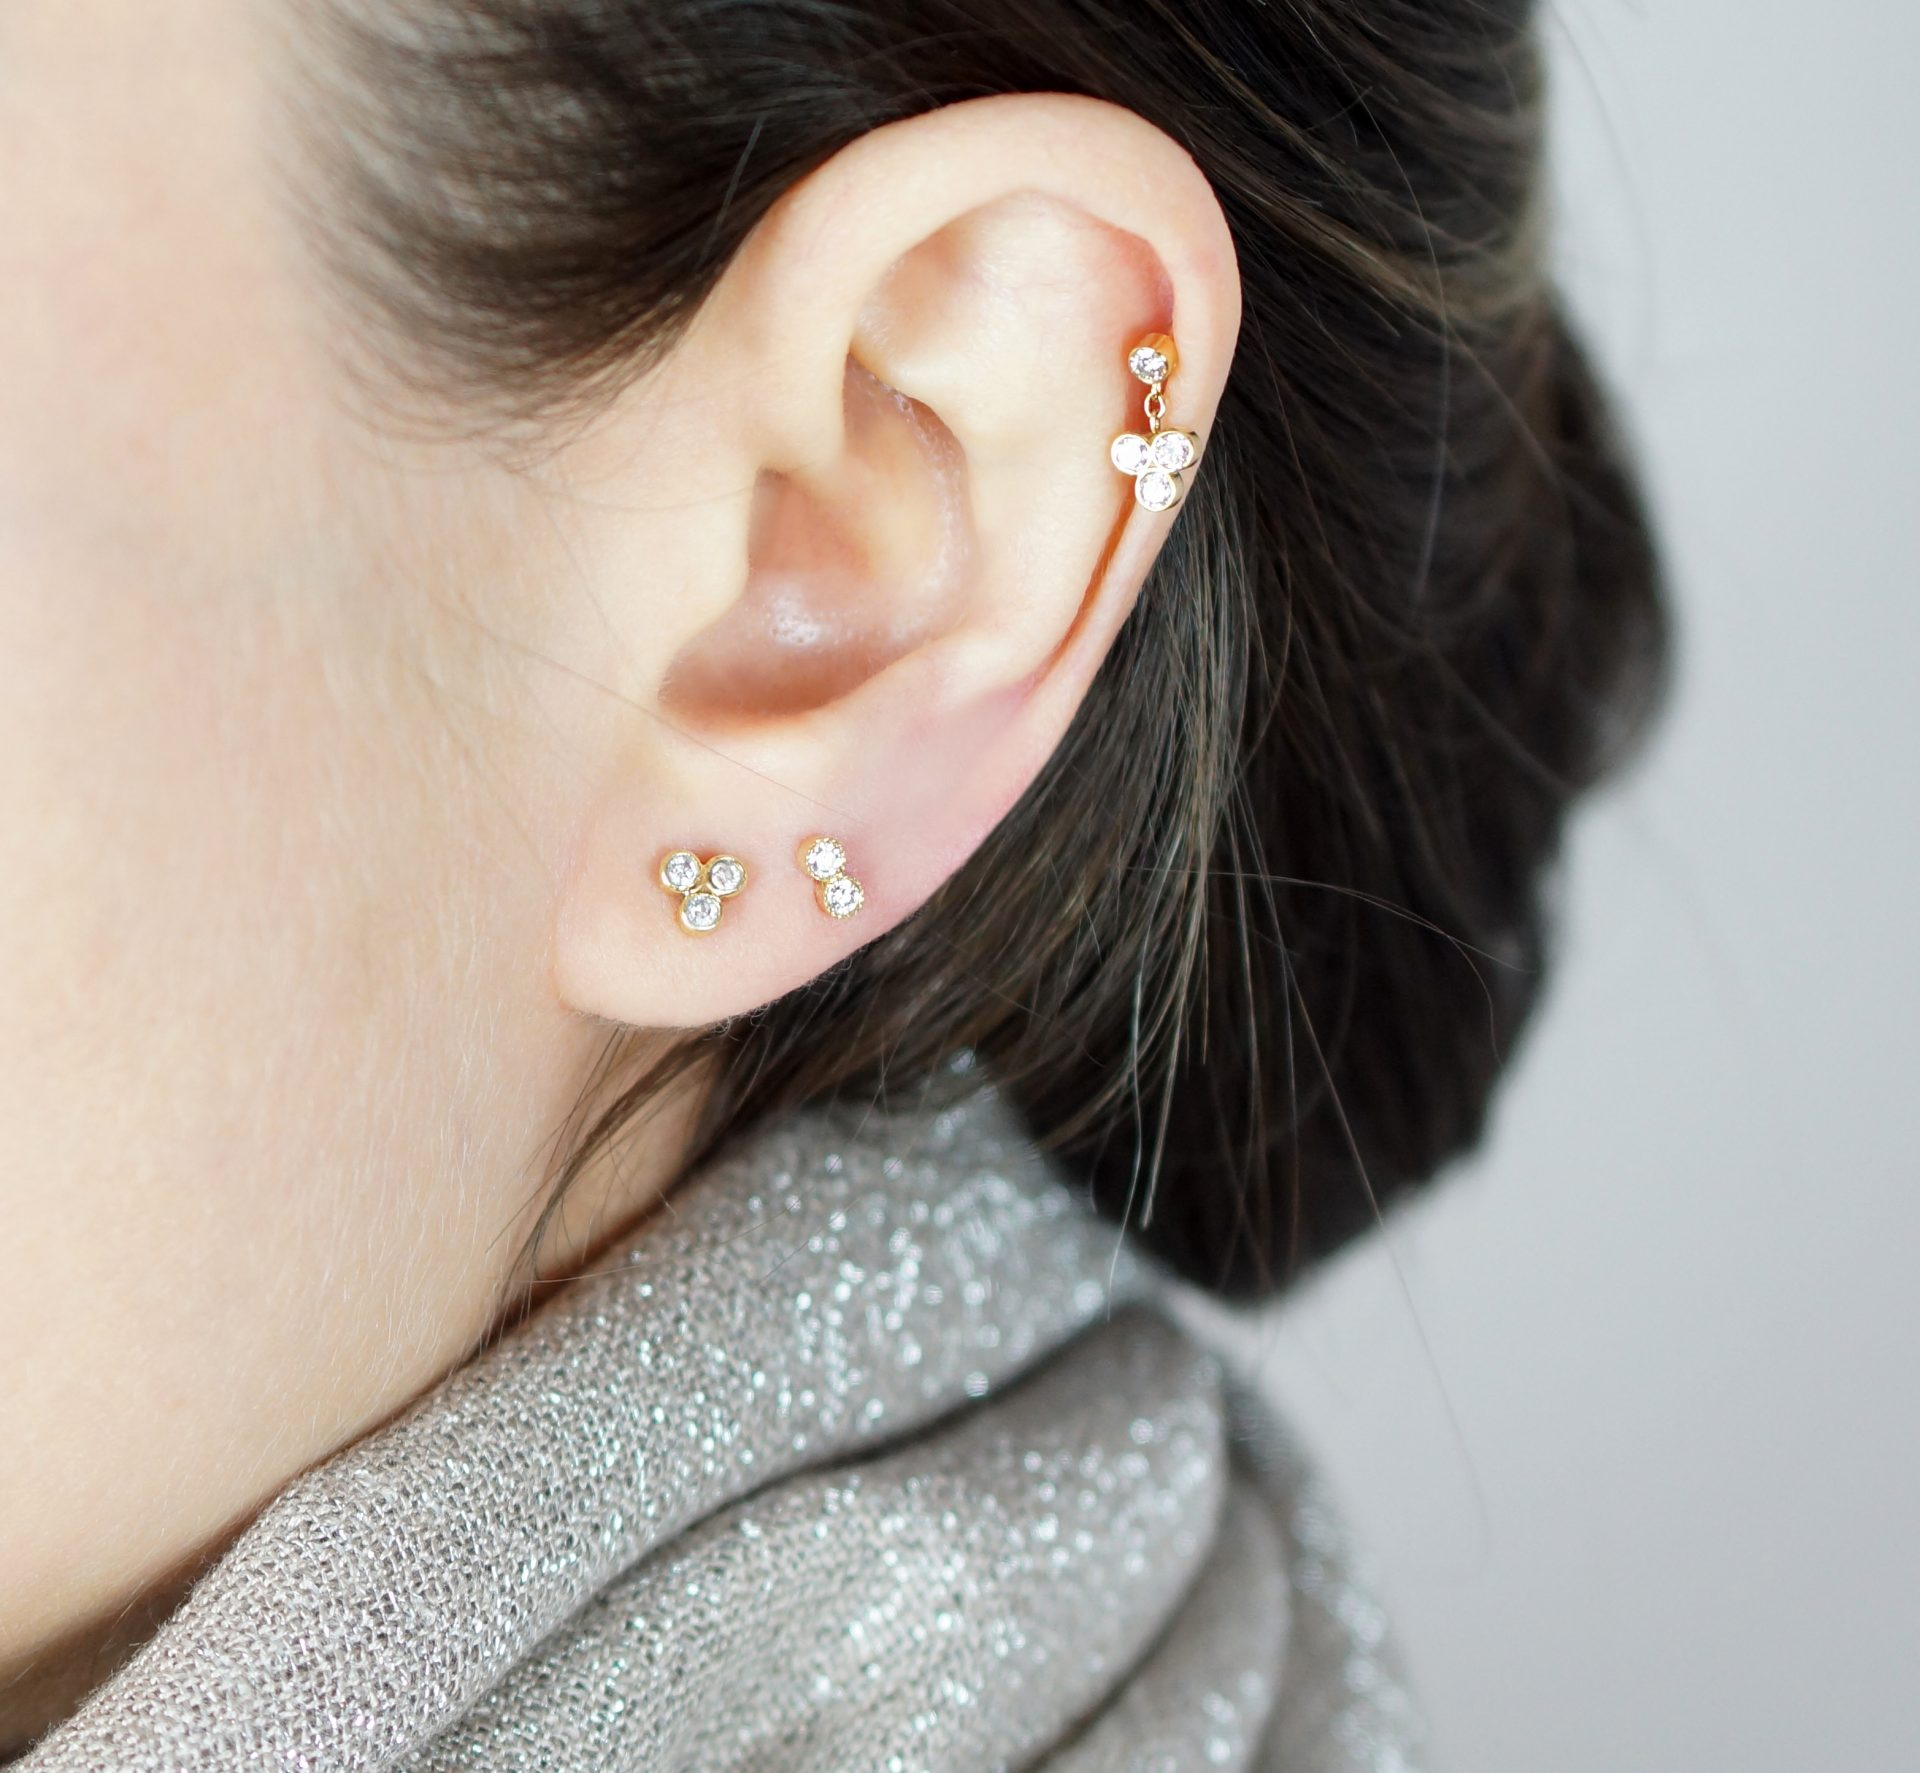 How best to layer your ear jewellery? It is just about how you like to combine your piercings and depends on the shape of your ear. What is the most popular ear piercing? Regarding cartilage piercings, helix and tragus are the most popular. You may simply go for multiple lobe piercings too; this is always an option.